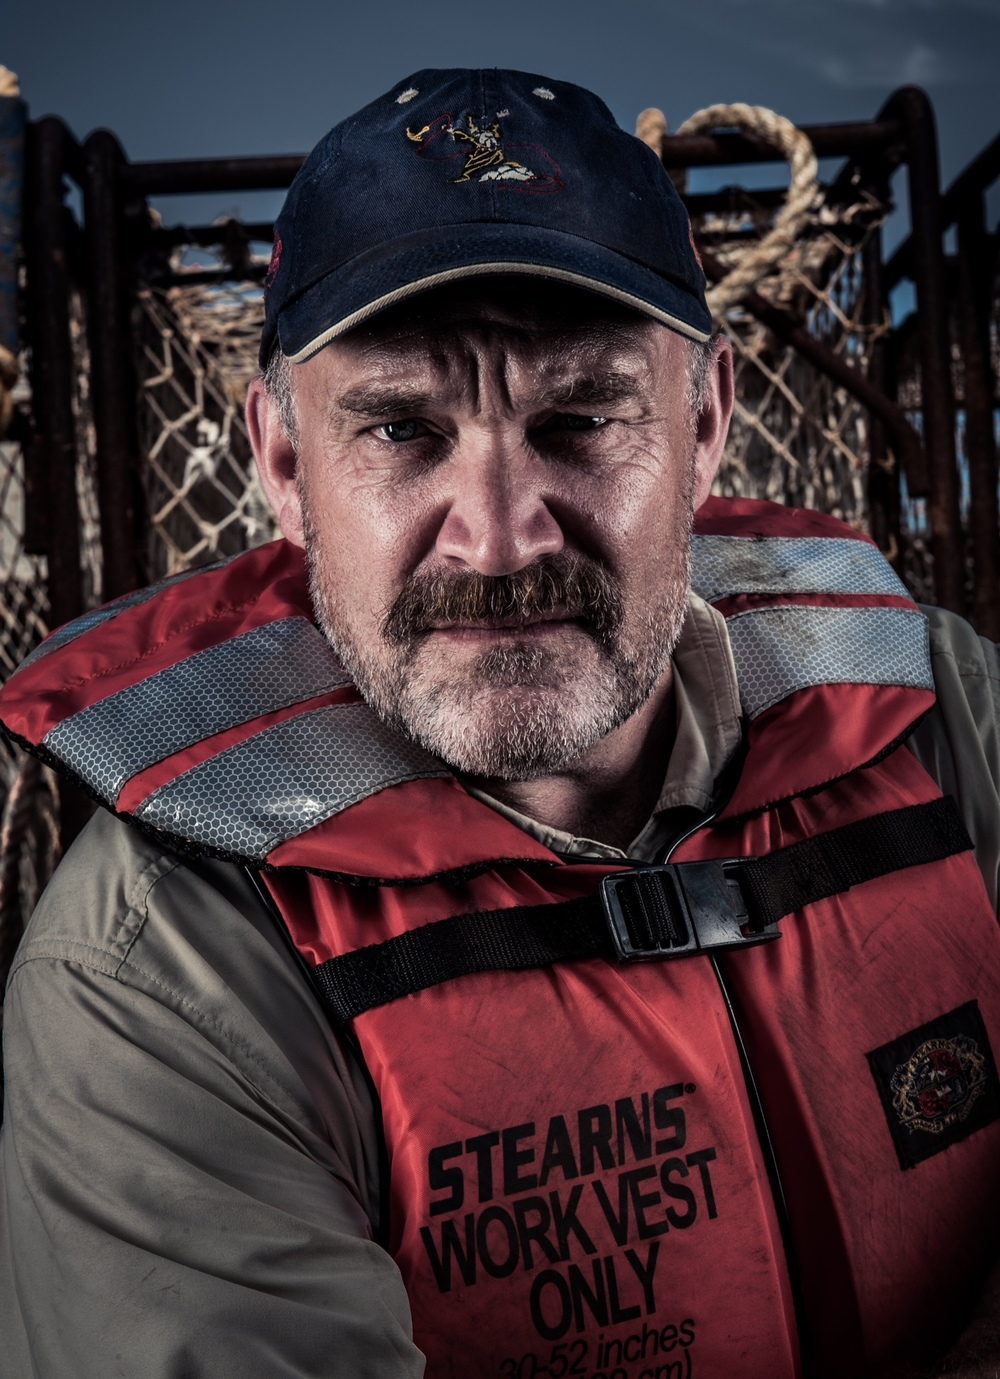 Keith - Stearns Vest Stare.jpeg